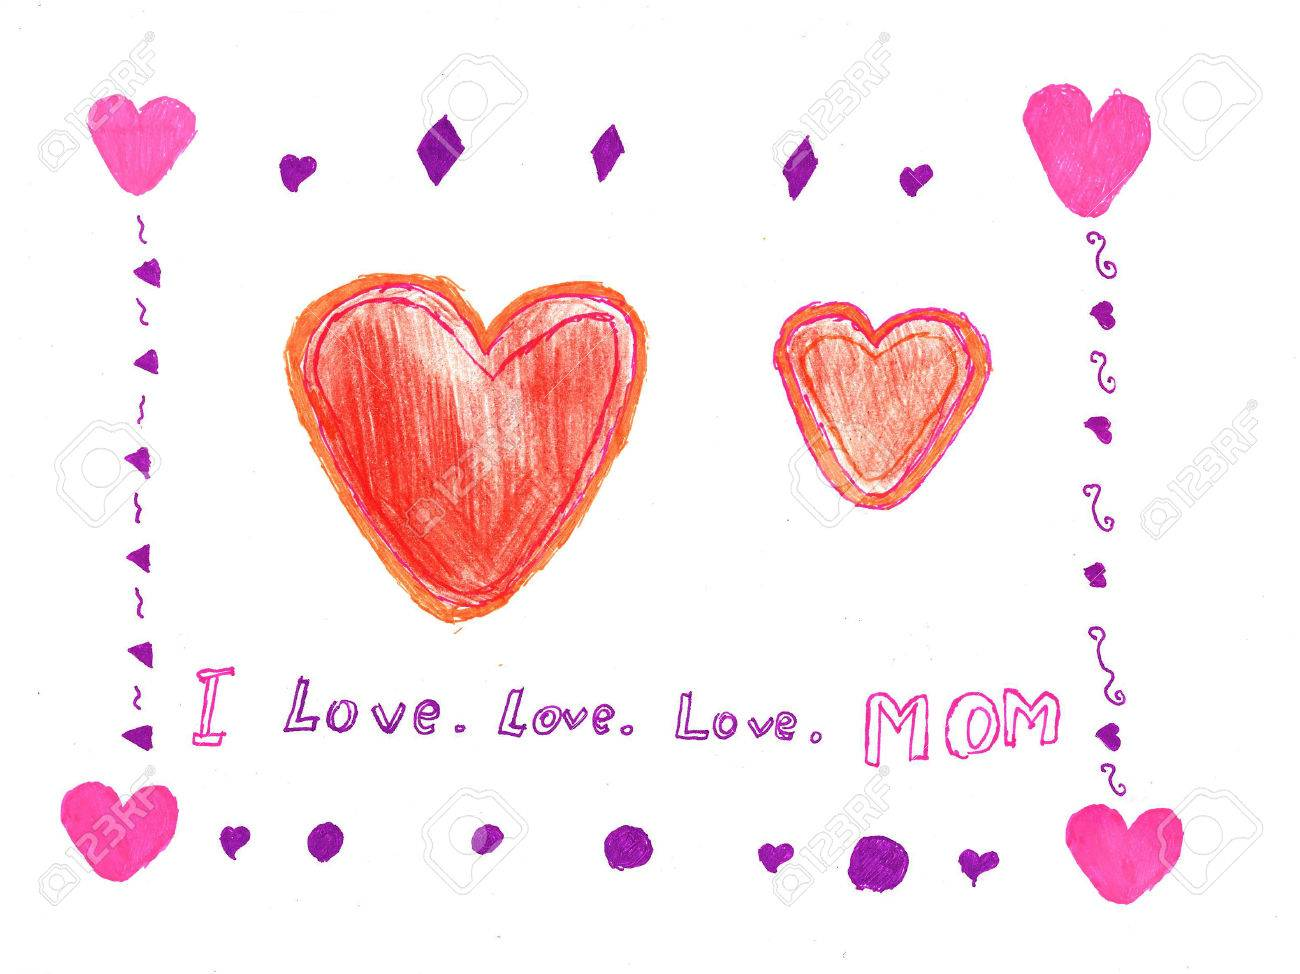 Child drawing mothers dayeeting cards stock photo picture and child drawing mothers dayeeting cards stock photo 39658070 m4hsunfo